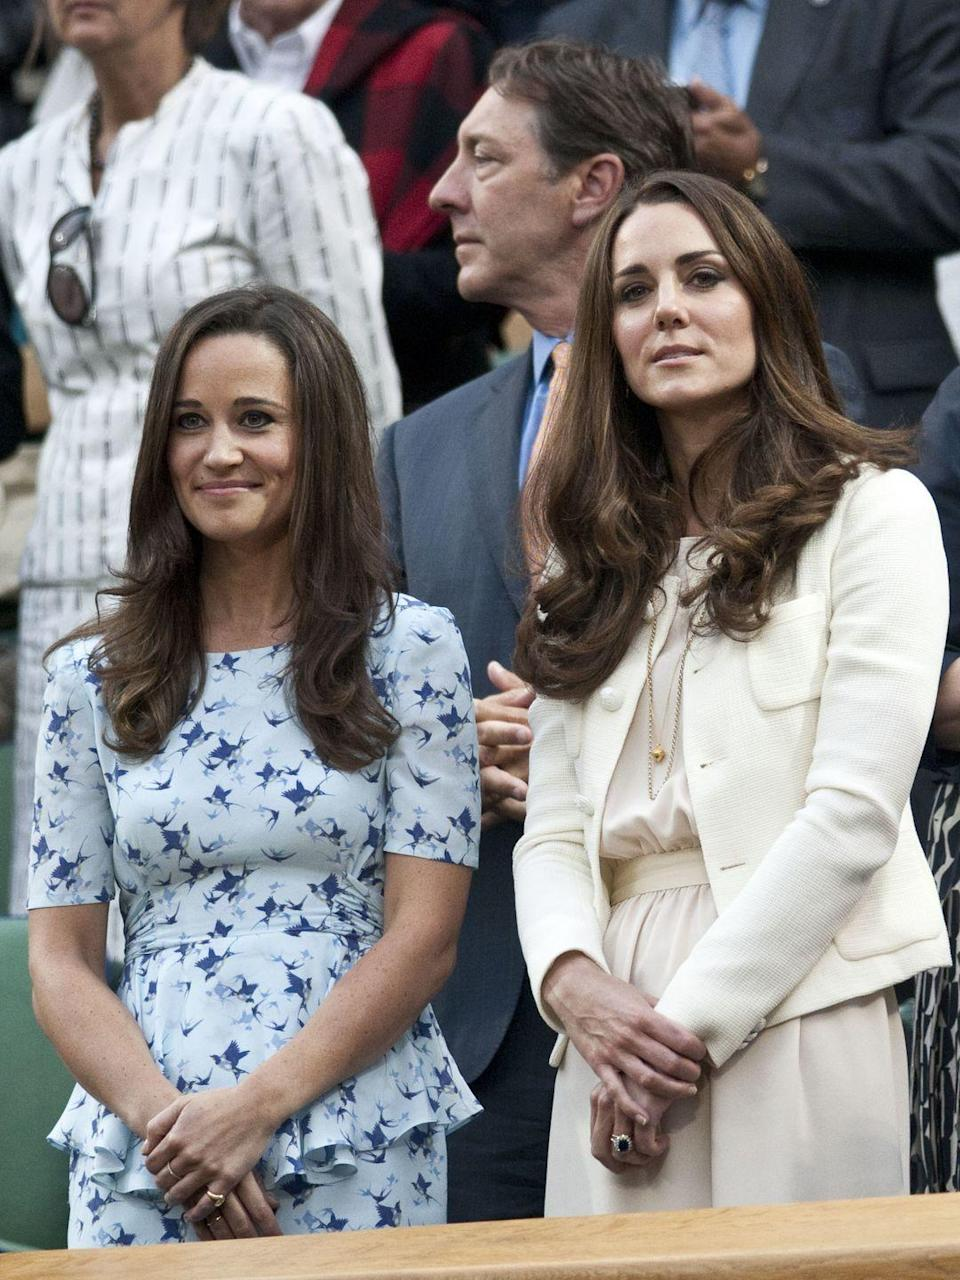 <p>Pippa Middleton was thrown into the spotlight after serving as her sister's maid of honor in her 2011 royal wedding. Although the Middleton sisters have always closely resembled one another, Pippa has also picked up on some royal styling cues from her big sis in recent years. </p>